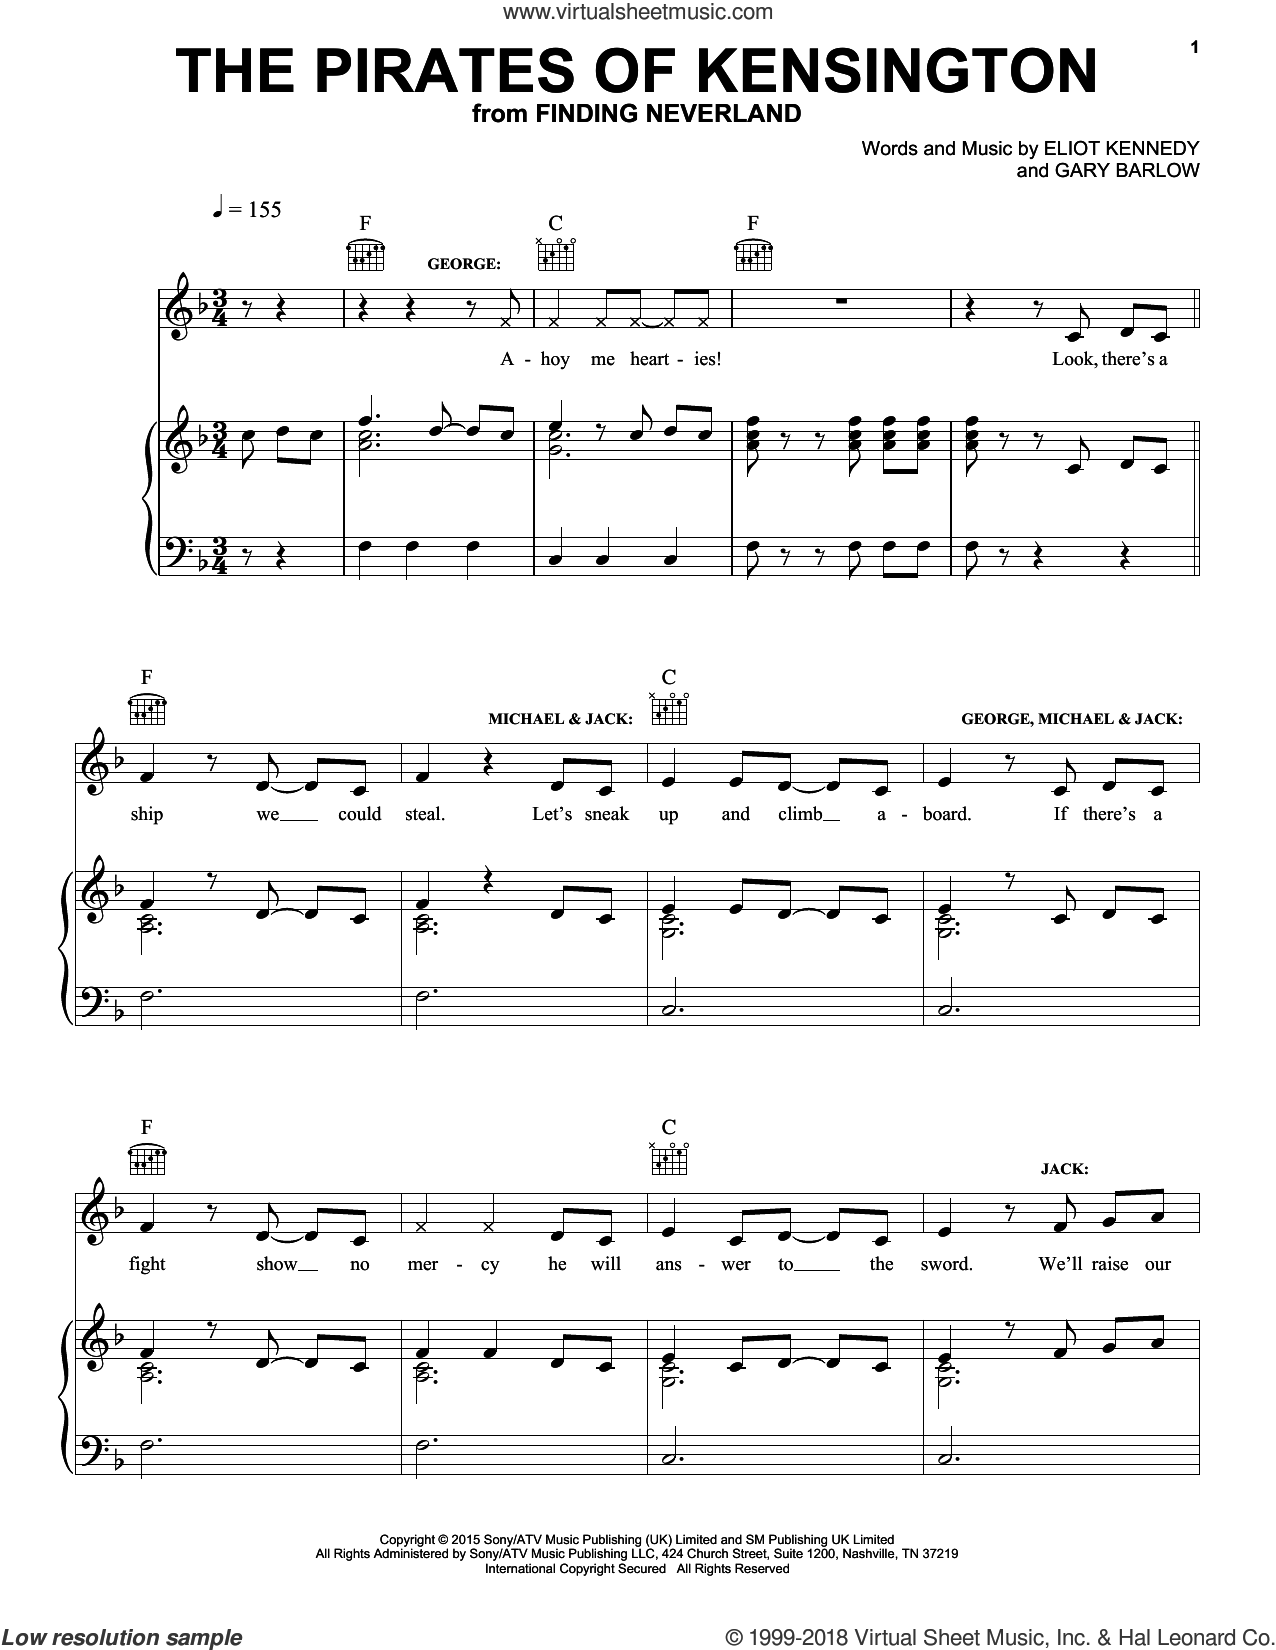 The Pirates Of Kensington sheet music for voice, piano or guitar by Eliot Kennedy and Gary Barlow, intermediate skill level